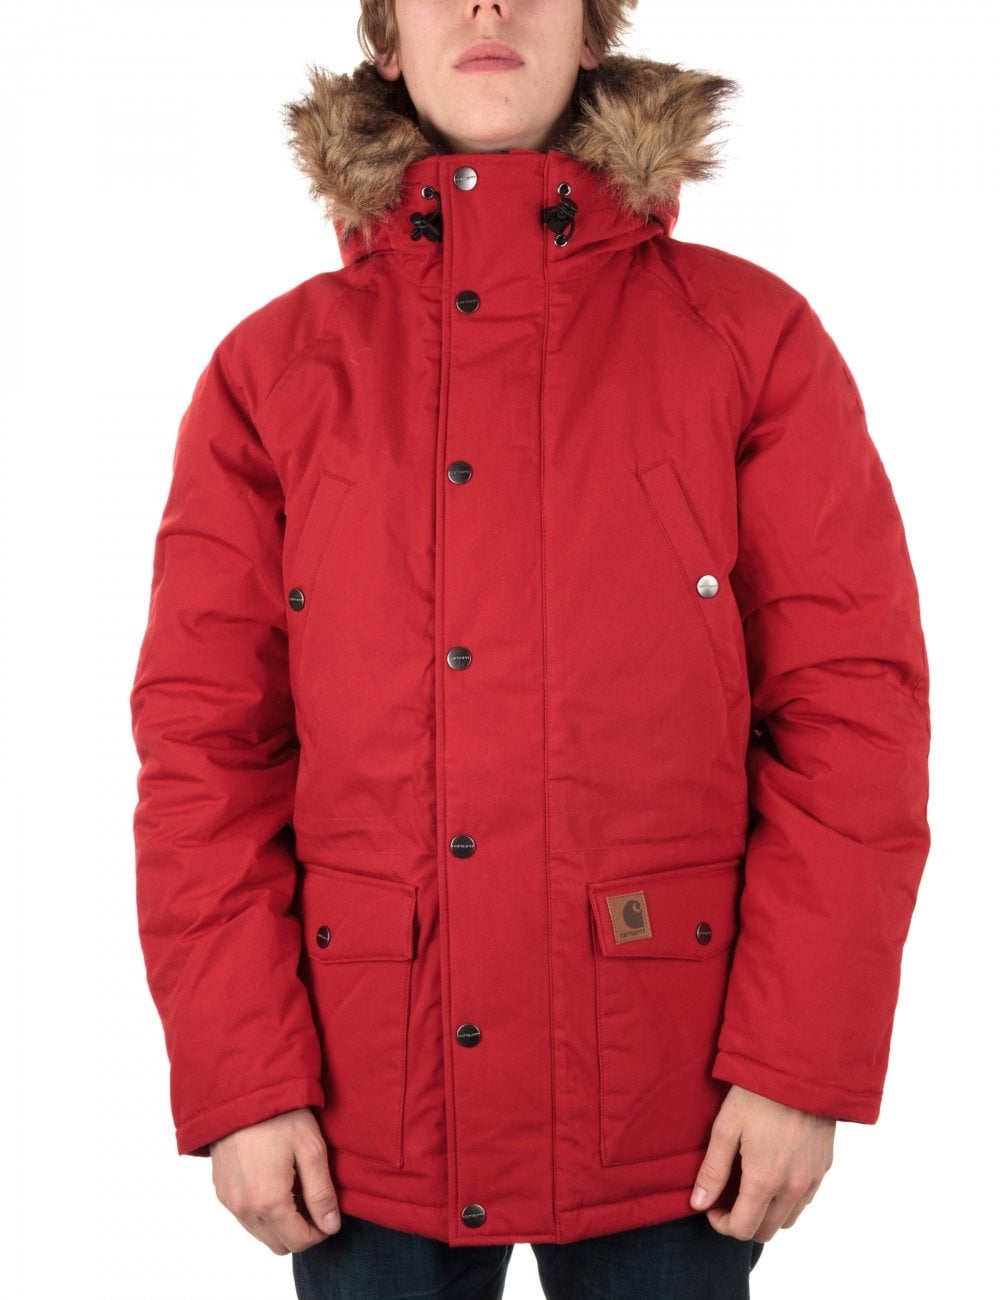 cheap for sale best website great prices Trapper Parka - Blast Red/Prune